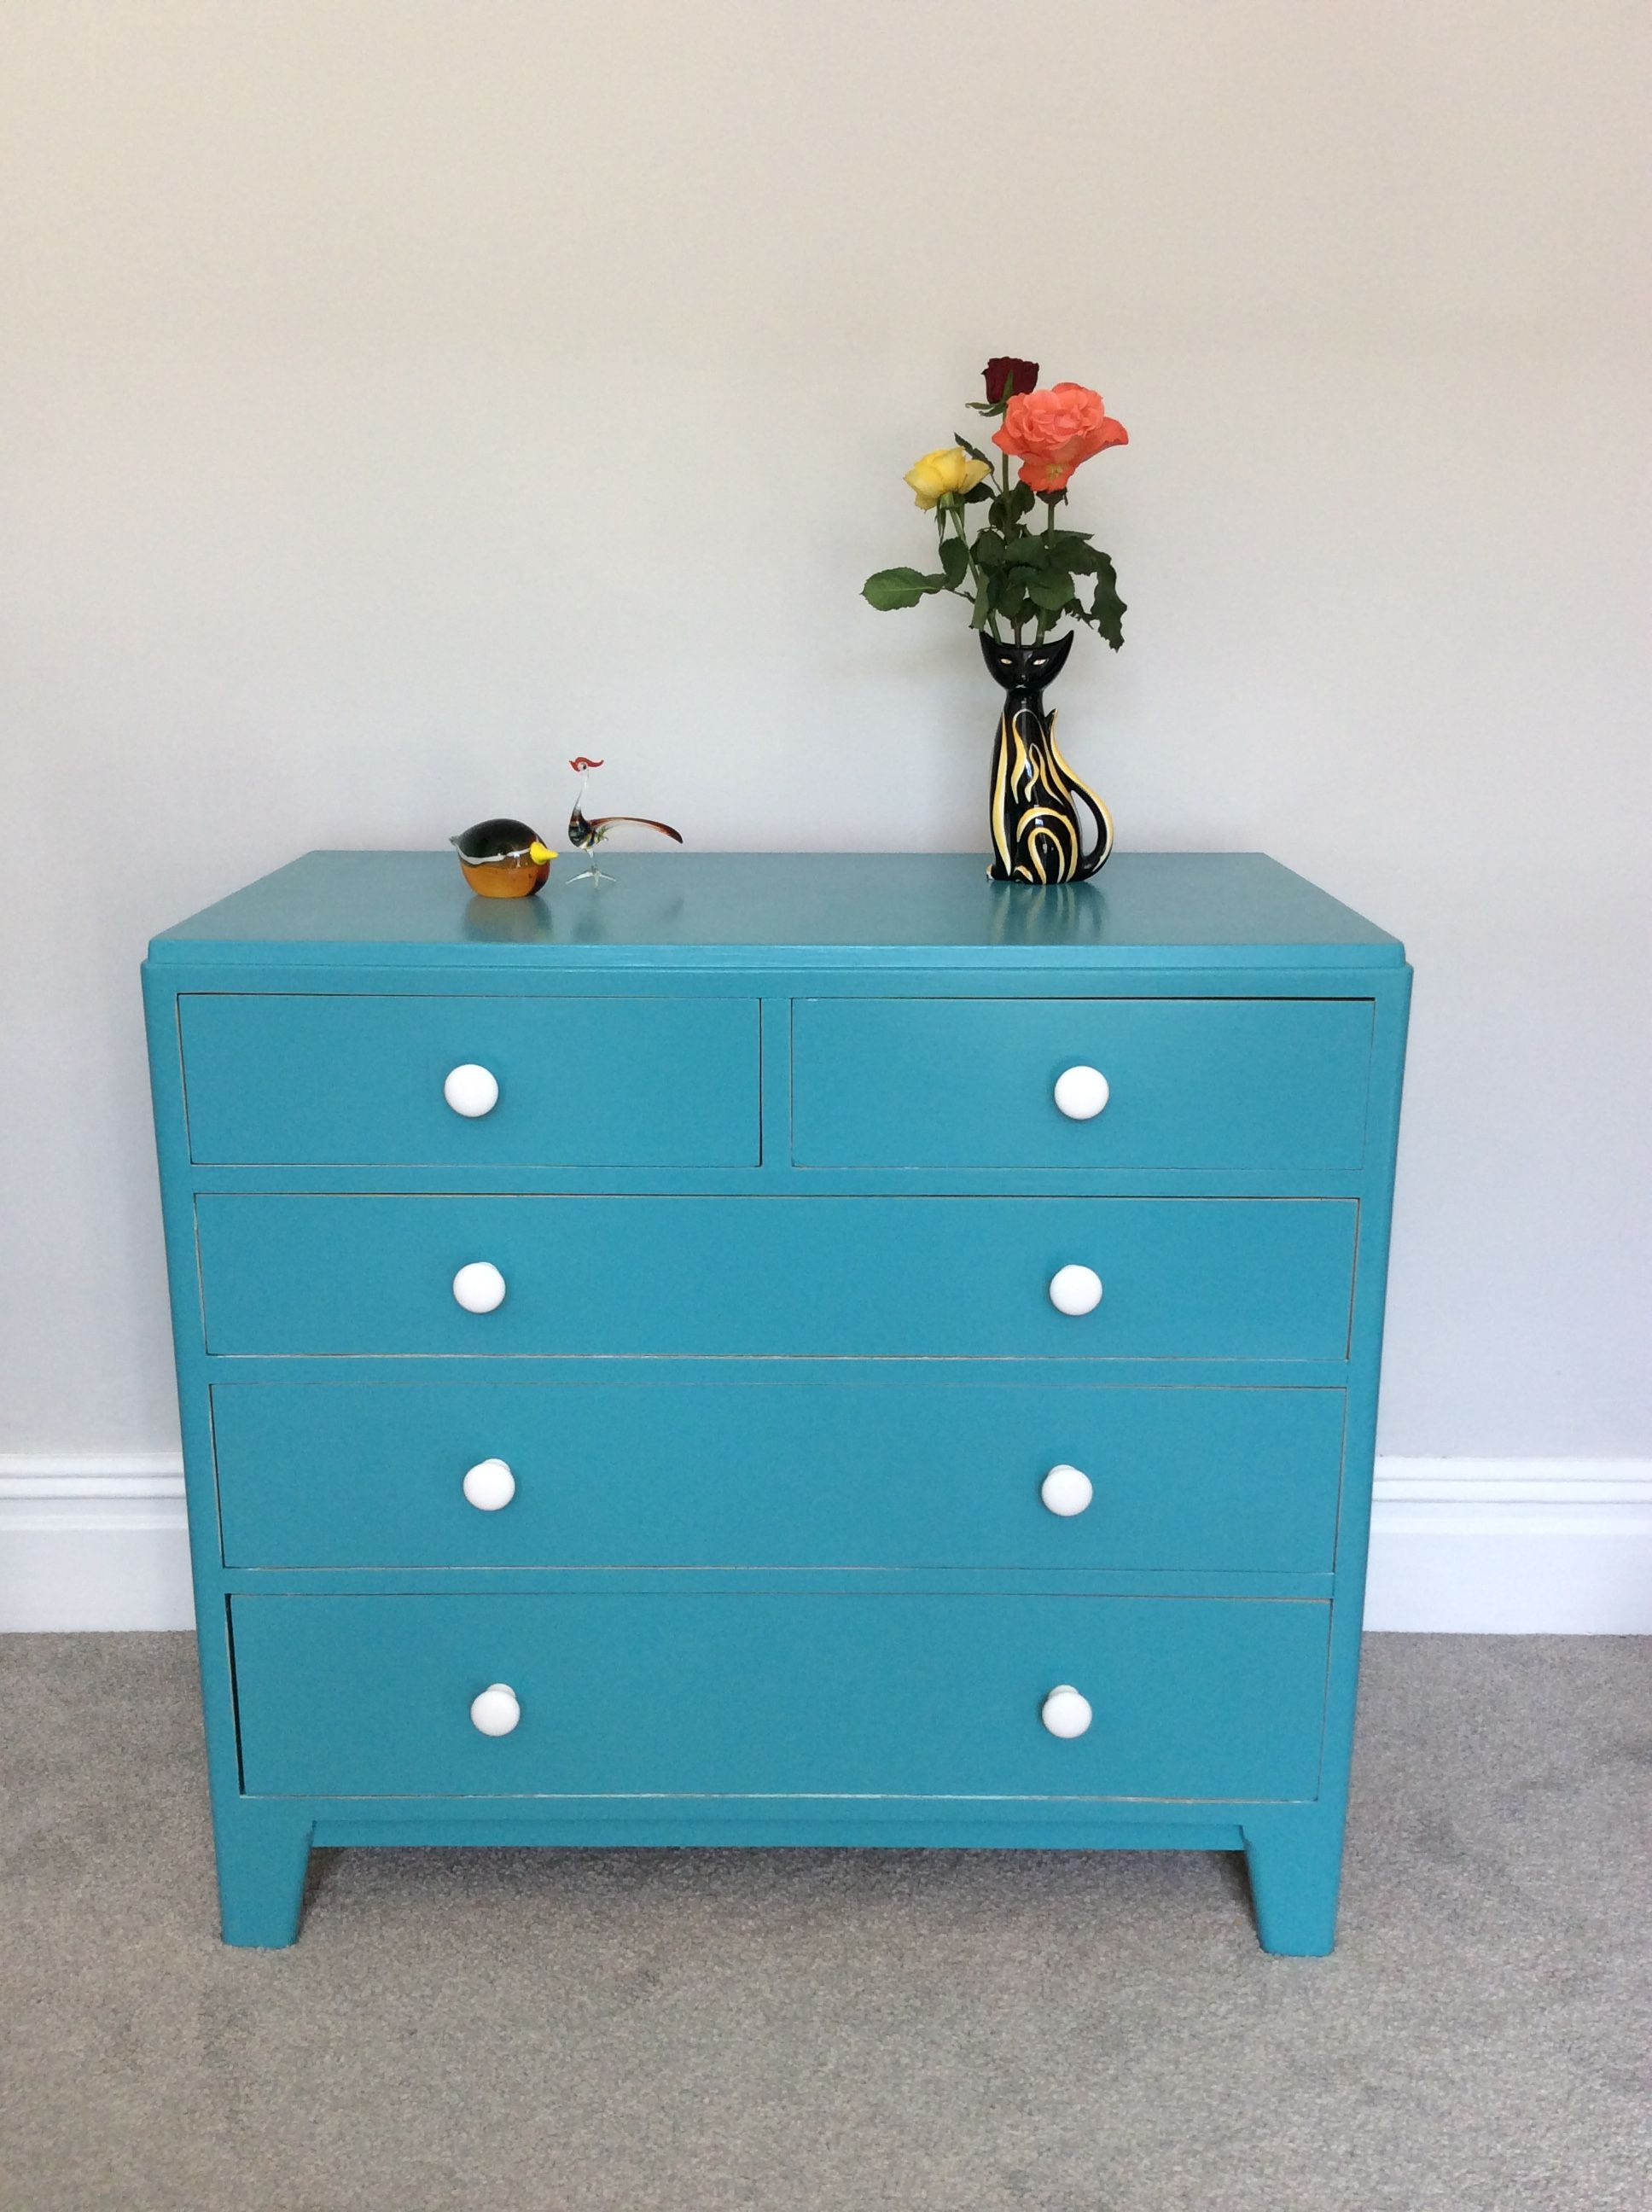 Refinished Painted Upcycled Furniture Turquoise Blue Dresser Chest Of Drawers Bo Shabby Chic Dresser Shabby Chic Bedrooms Shabby Chic Furniture